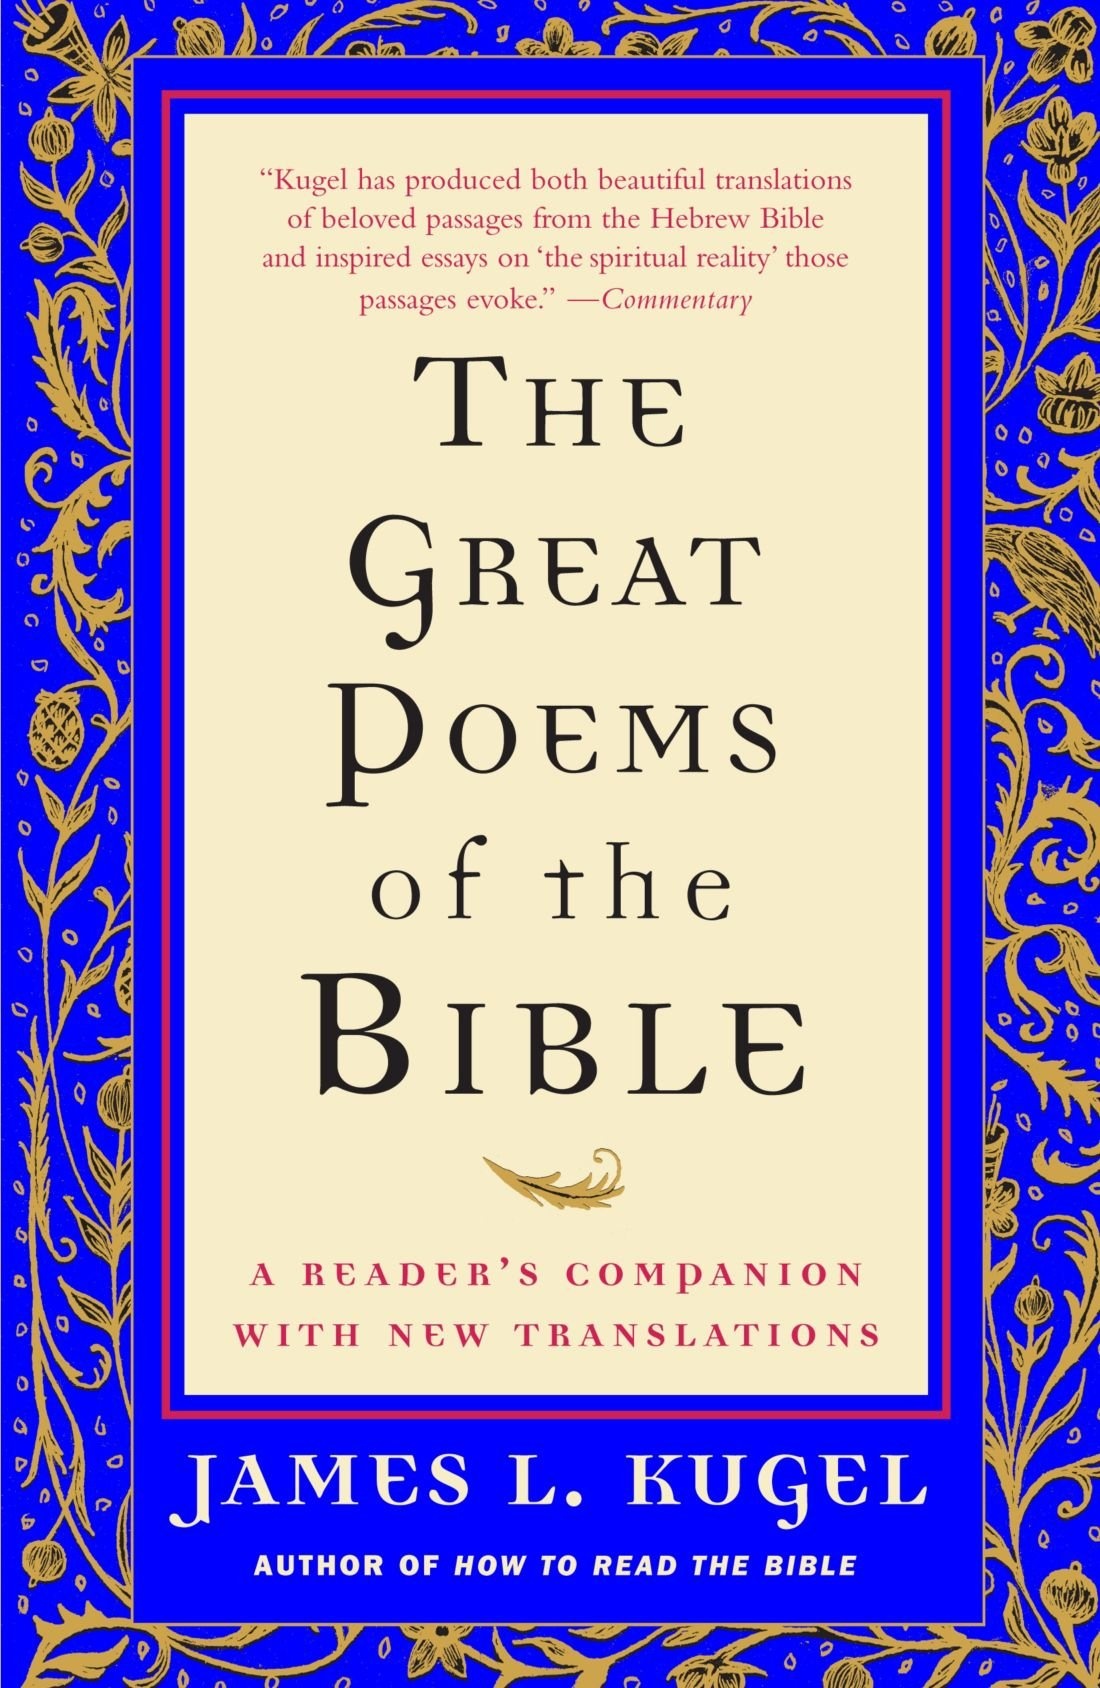 the great poems of the bible a reader s companion new the great poems of the bible a reader s companion new translations james l kugel 9781416589020 com books